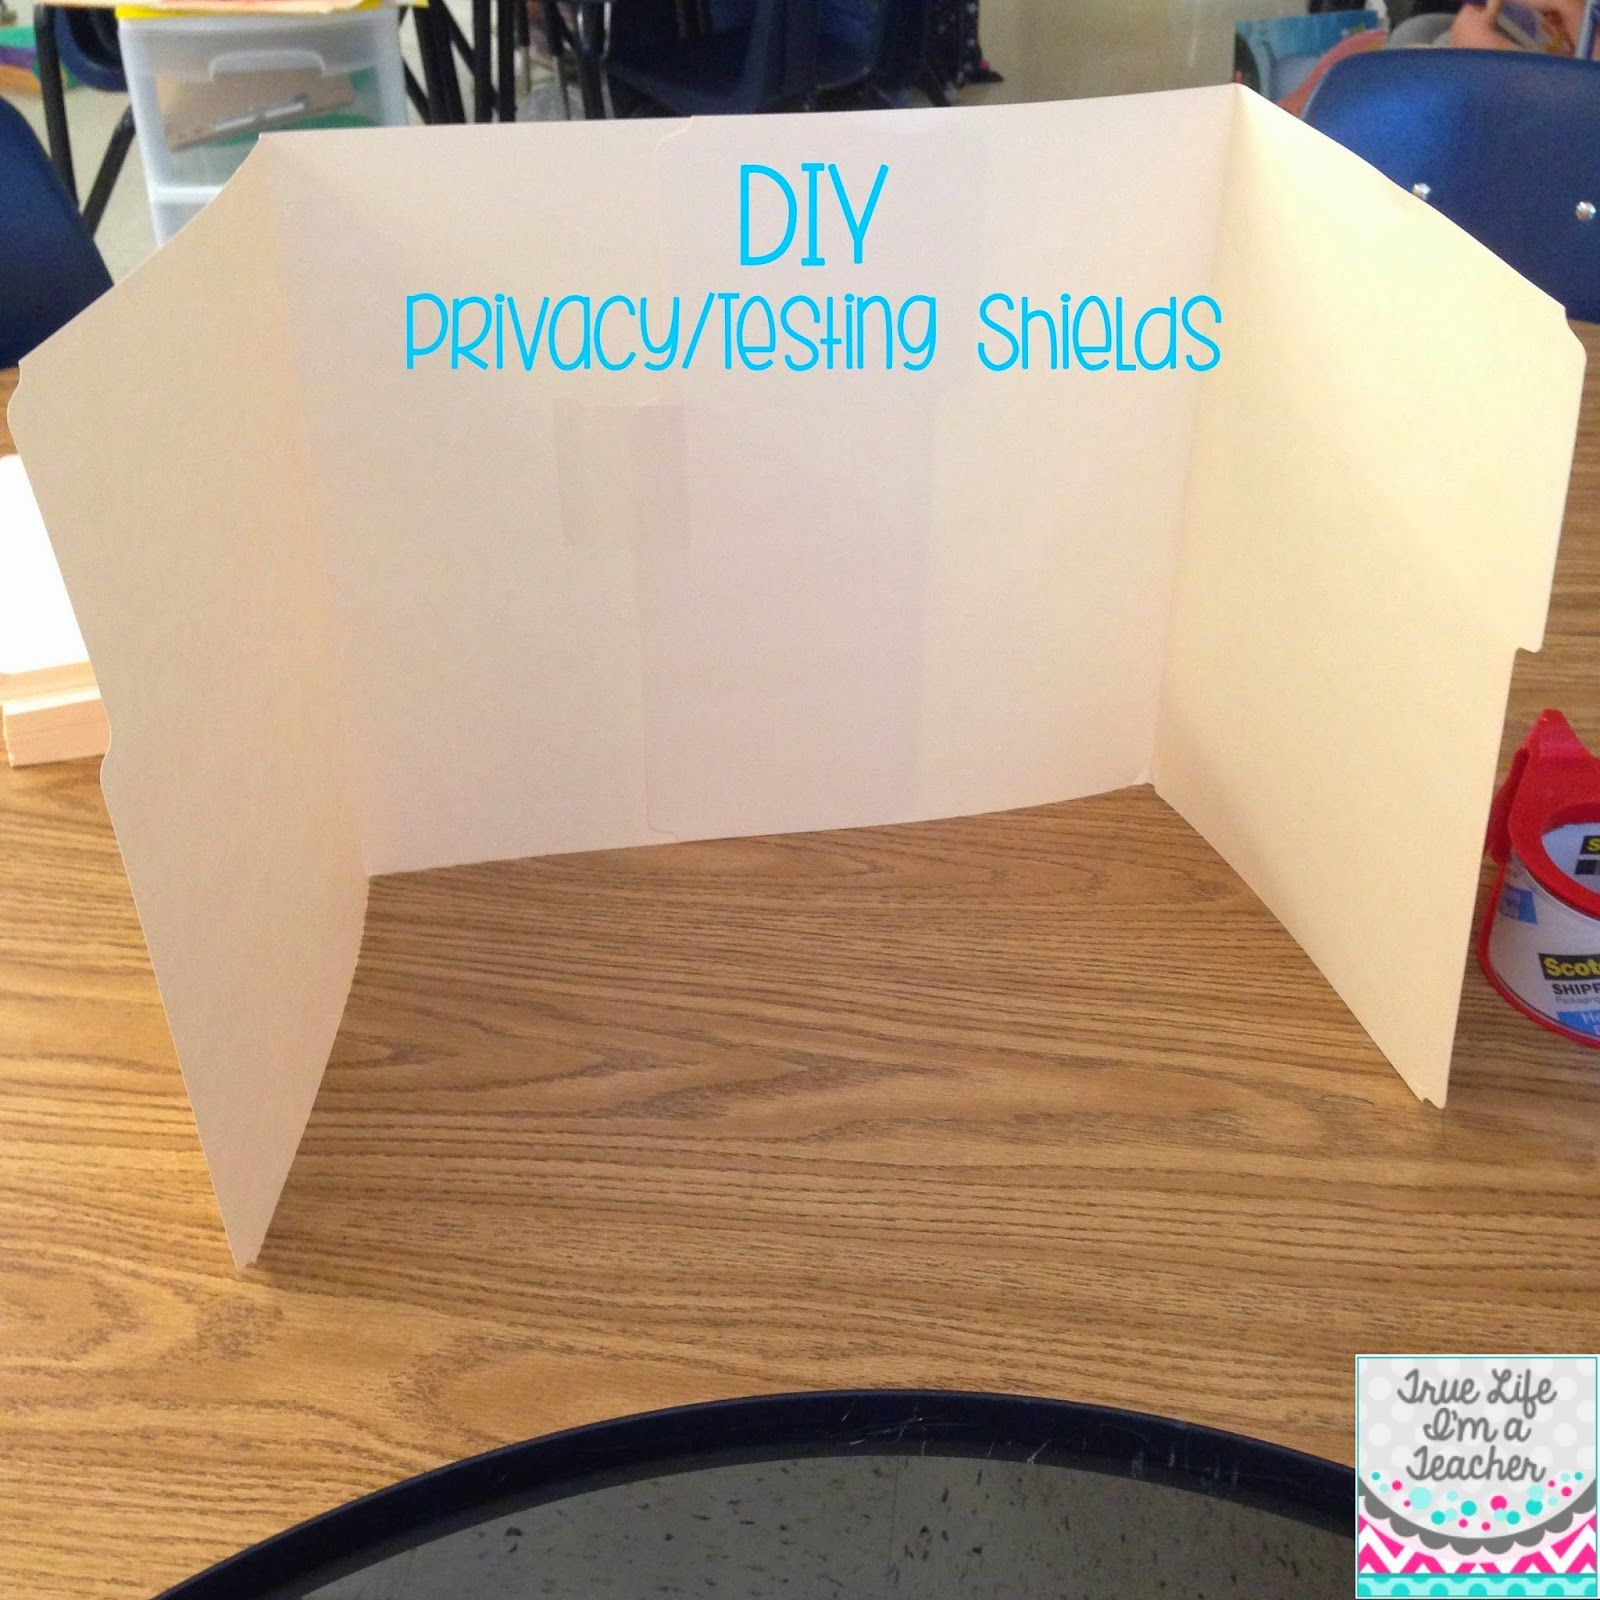 Make A Durable Class Set Of Diy Privacytesting Shields For Less